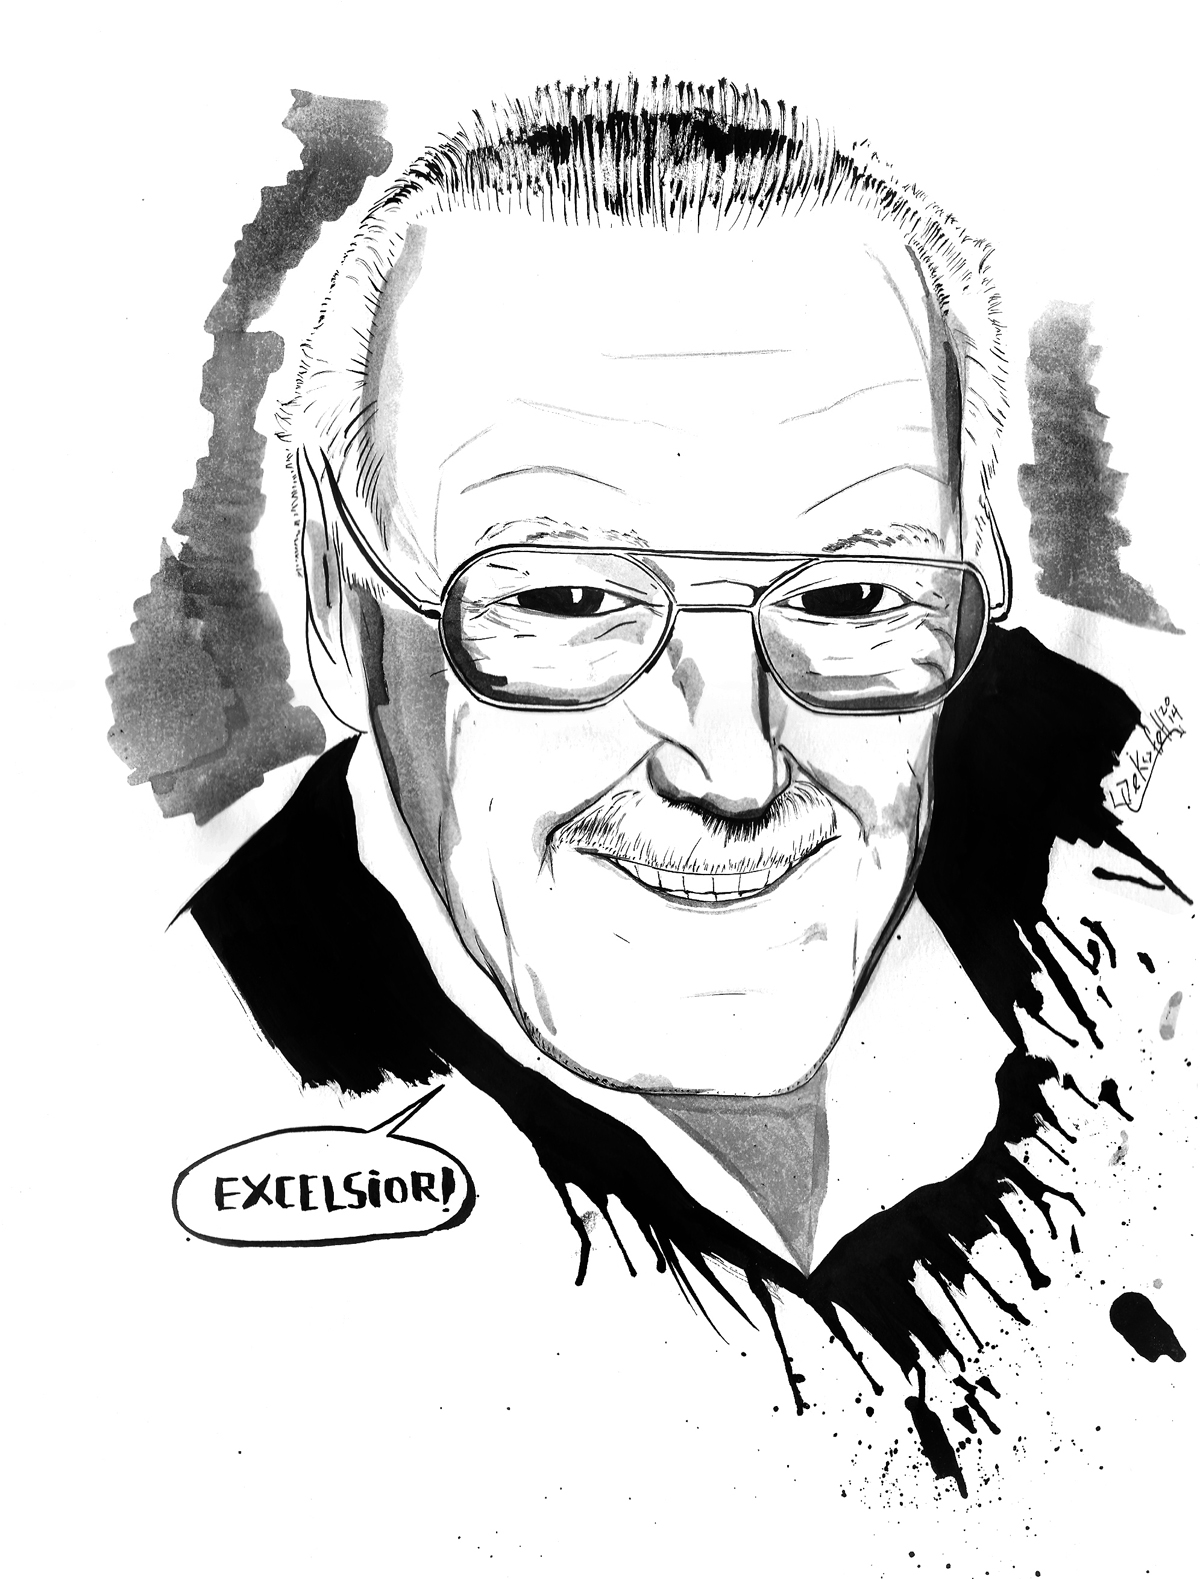 Excelsior by wekufeh